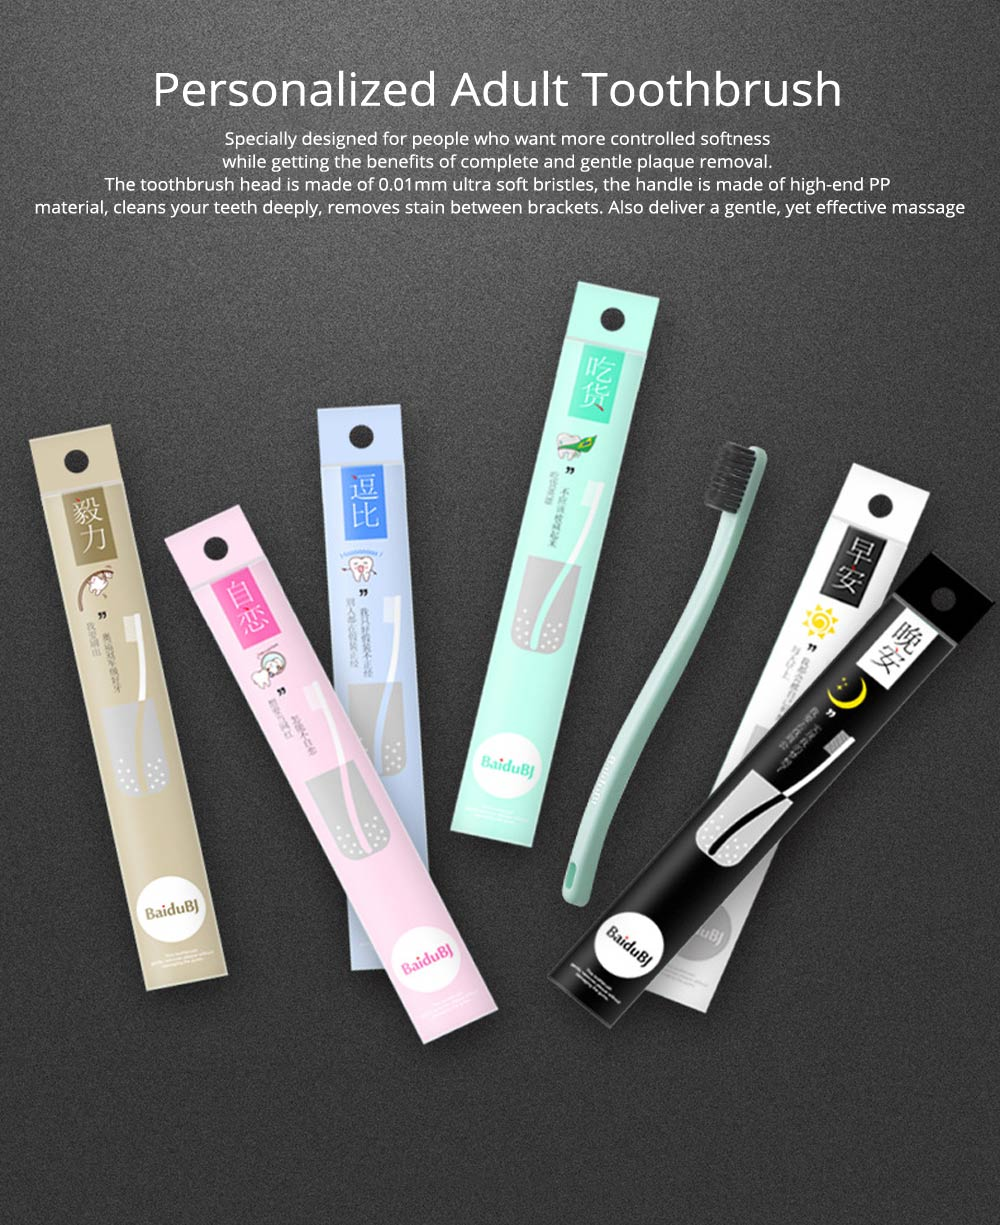 Bamboo Charcoal Toothbrush Soft Slim, Personalized Adult Toothbrush 0